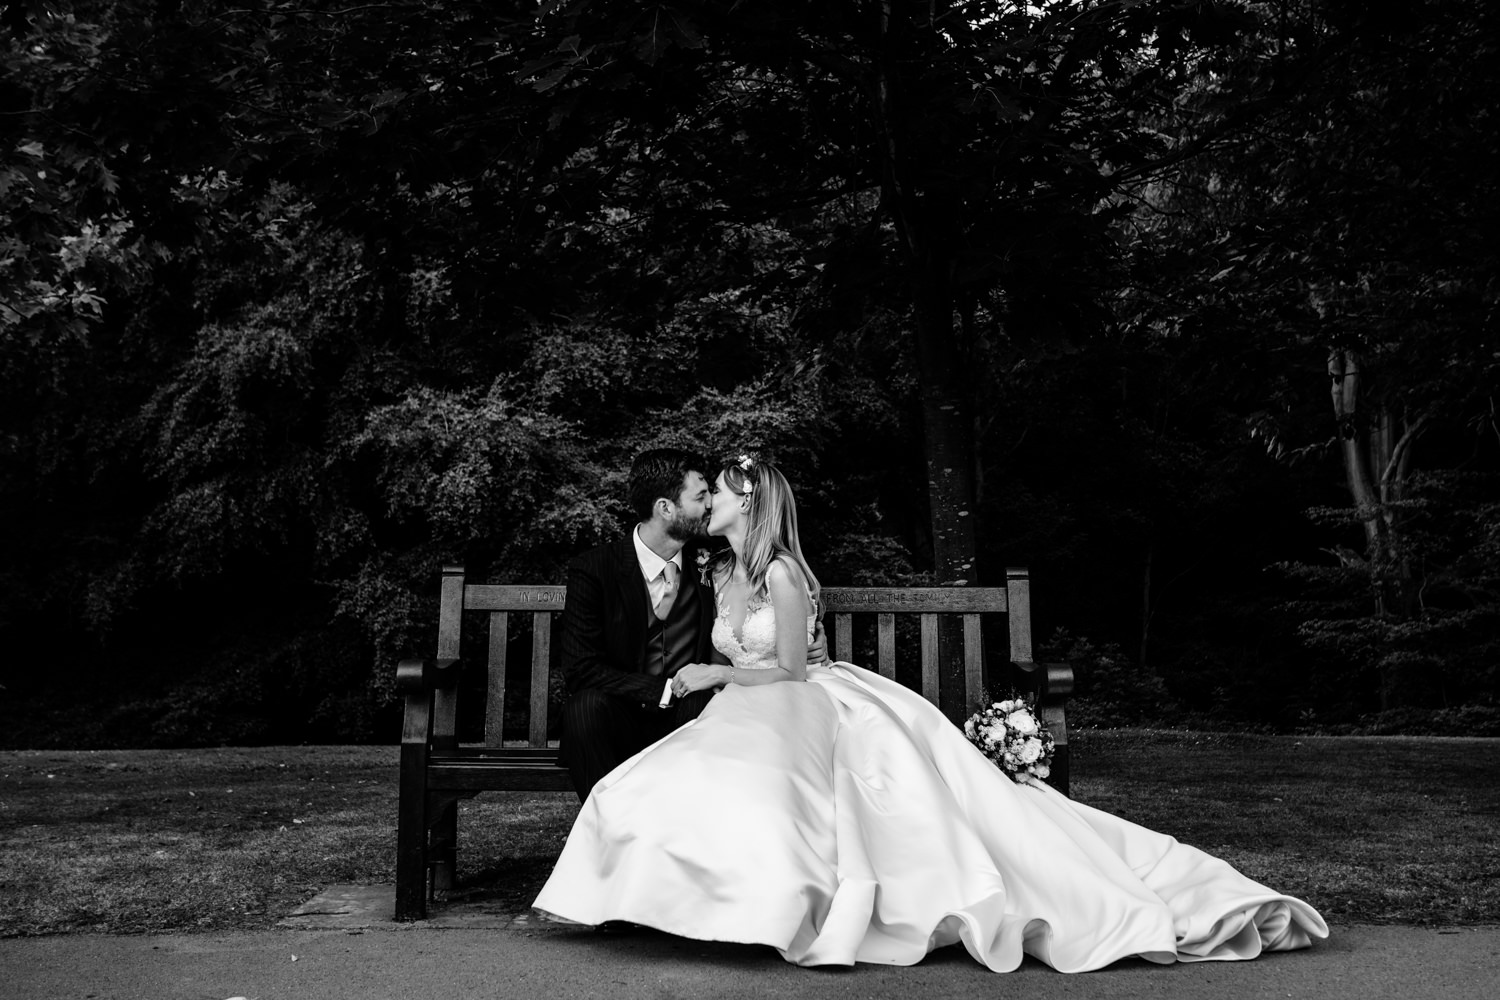 Romantic kiss between a bride and groom, wedding	photographer Whirlowbrook Hall Sheffield